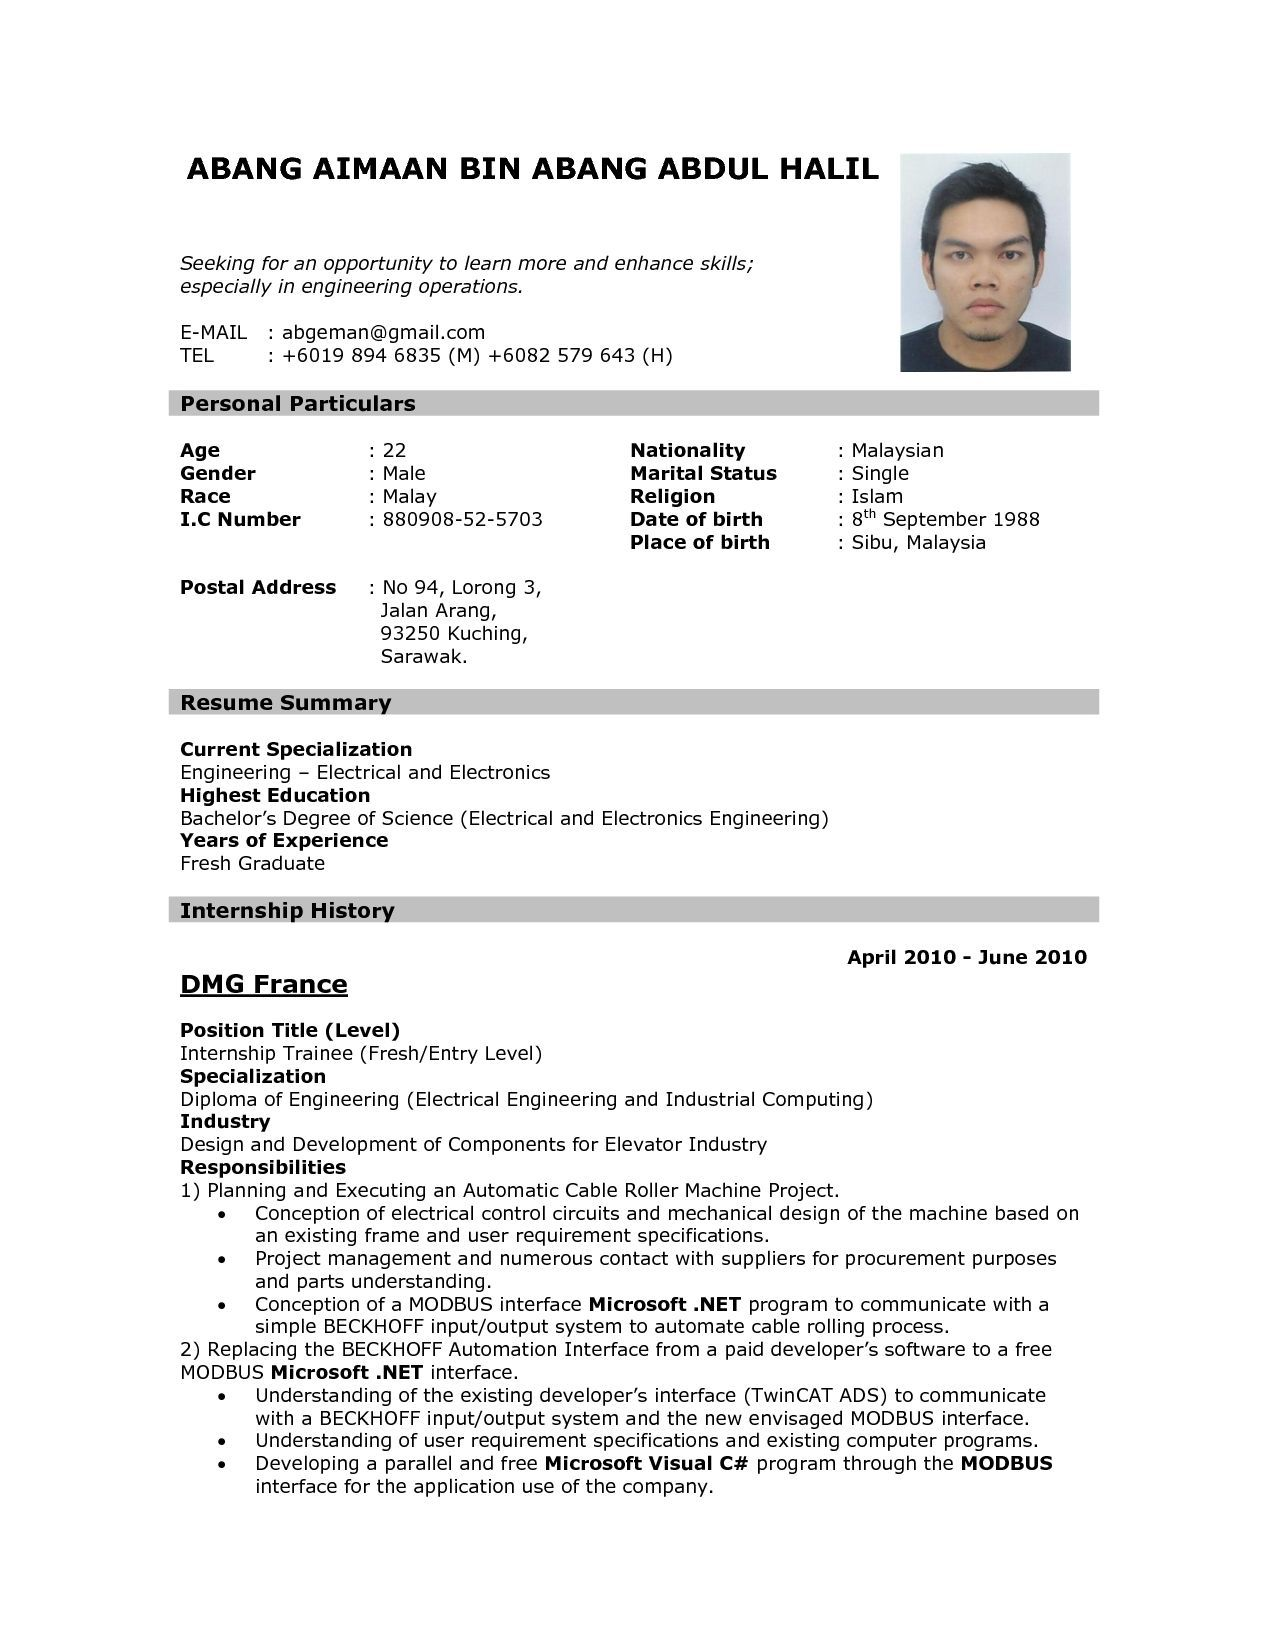 Sample Of Resume Format For Job Application Job resume